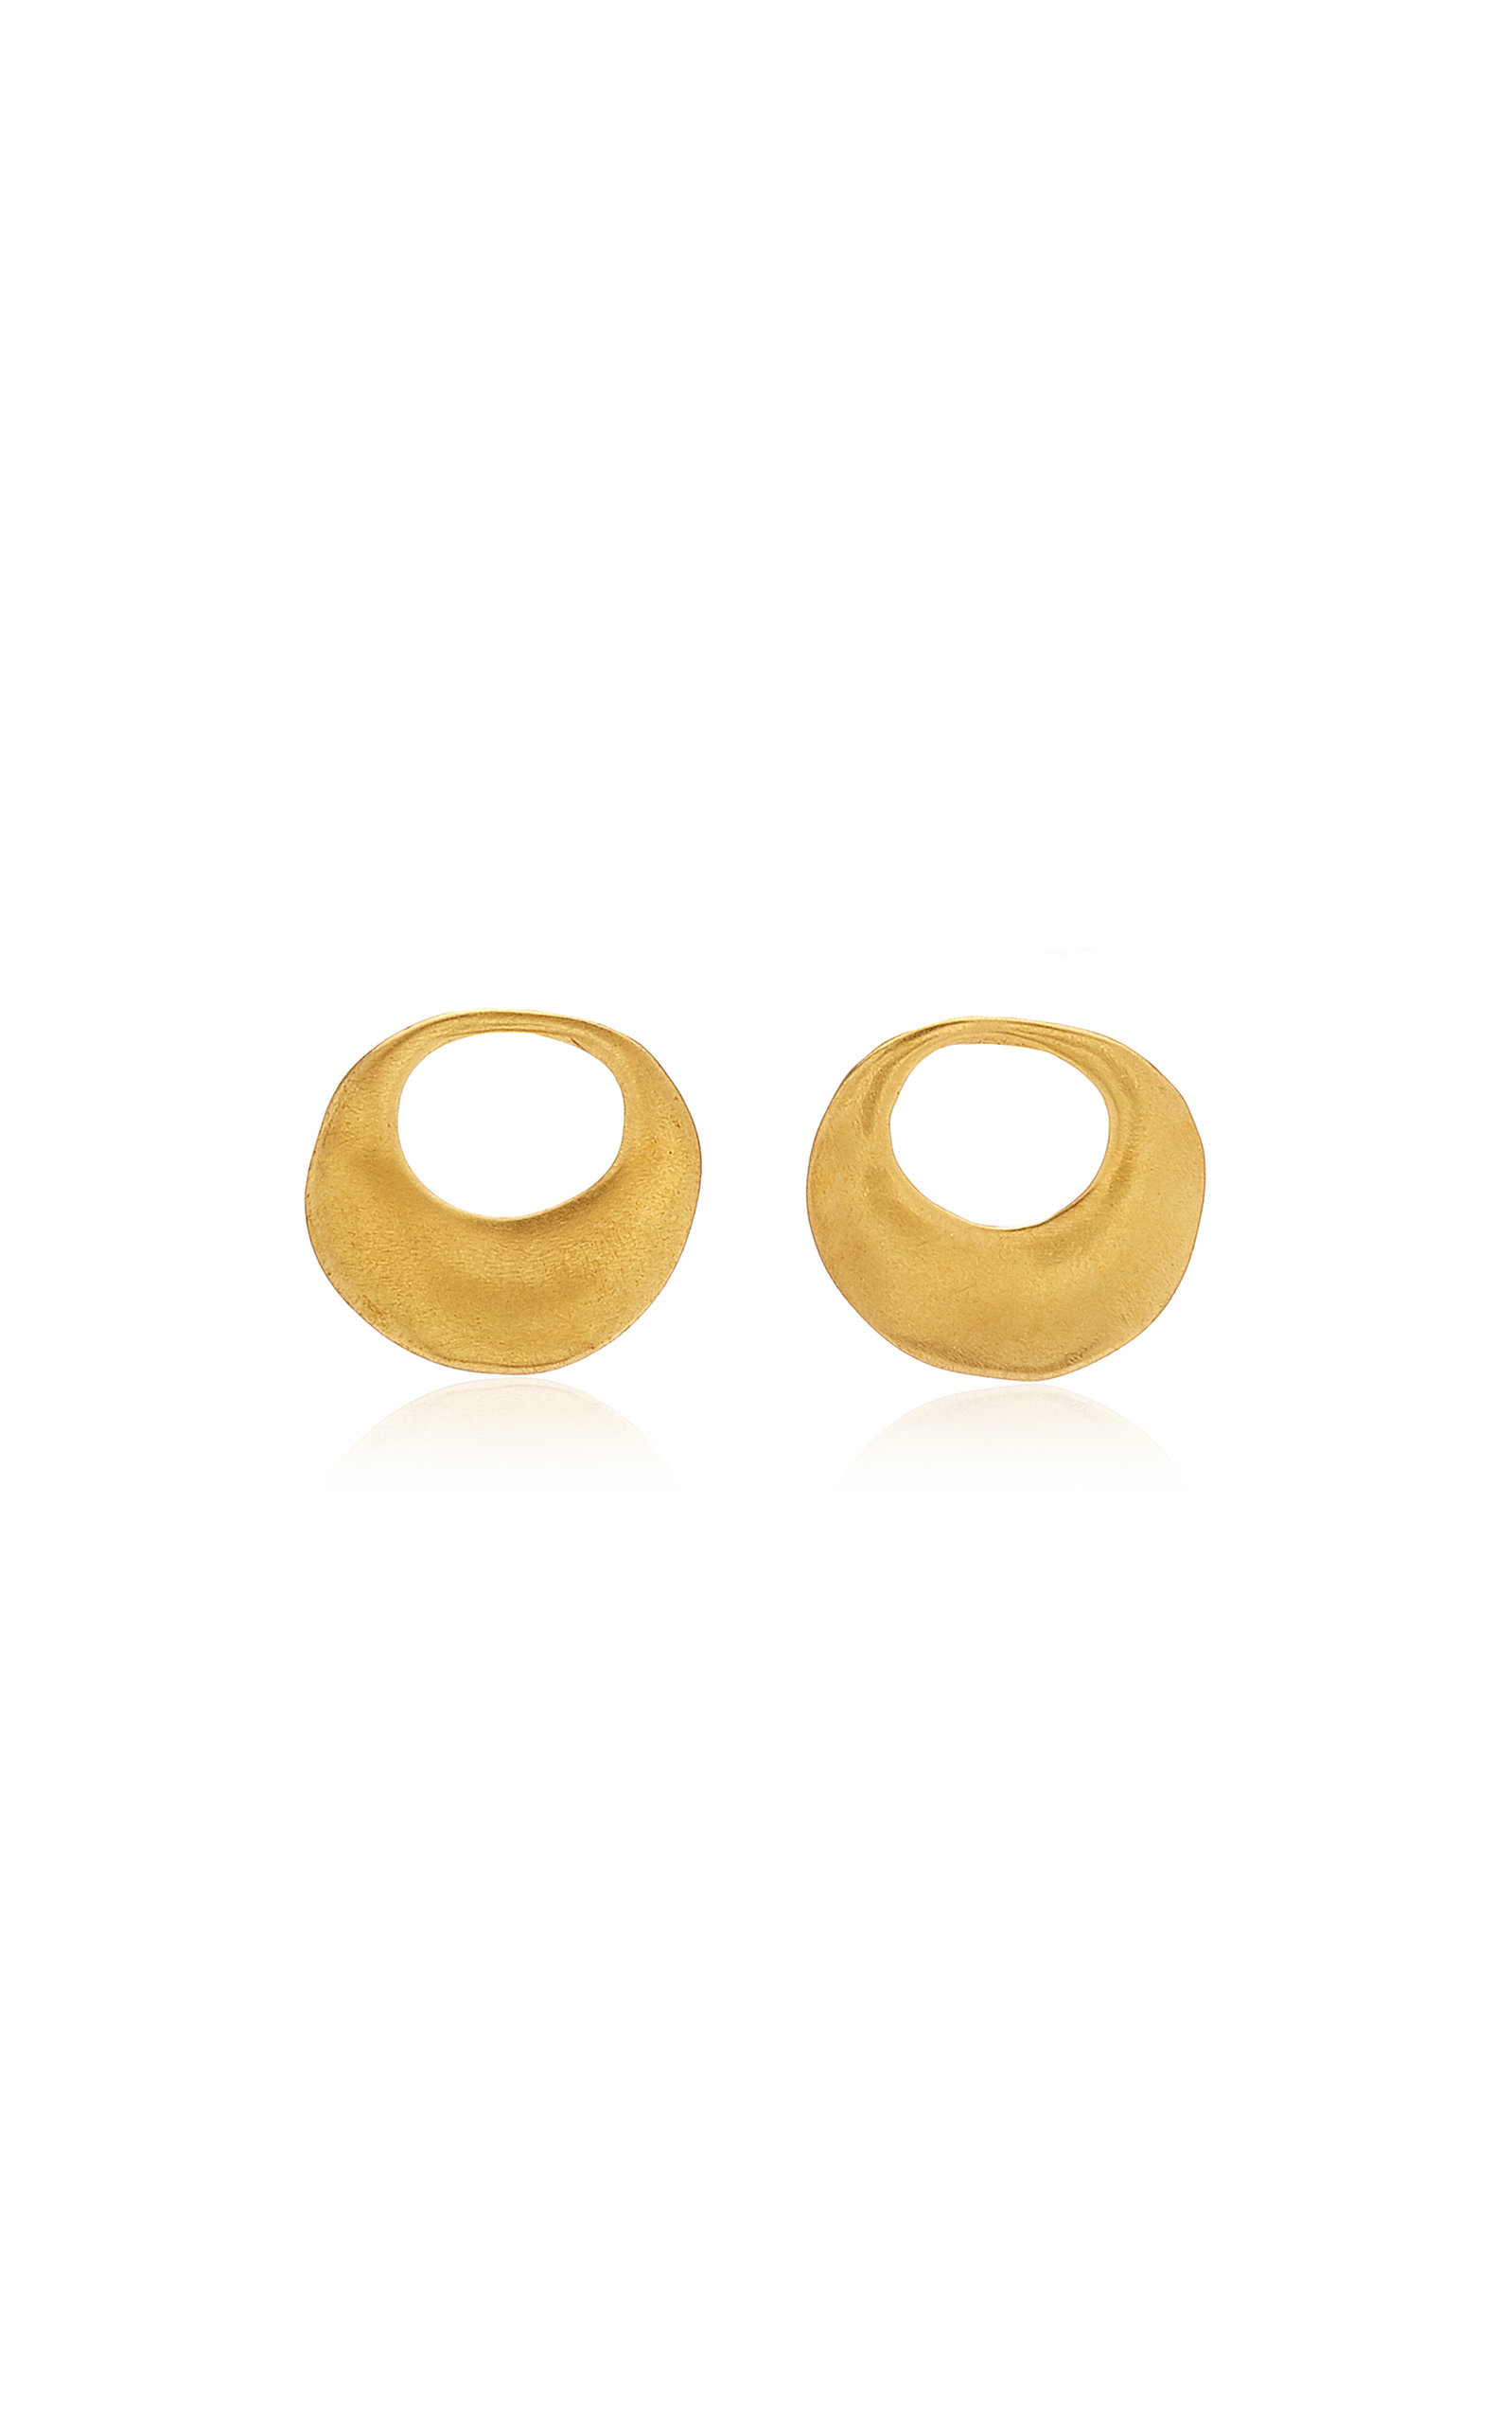 Women's Nariguera Pequena 24K Gold-Plated Earrings